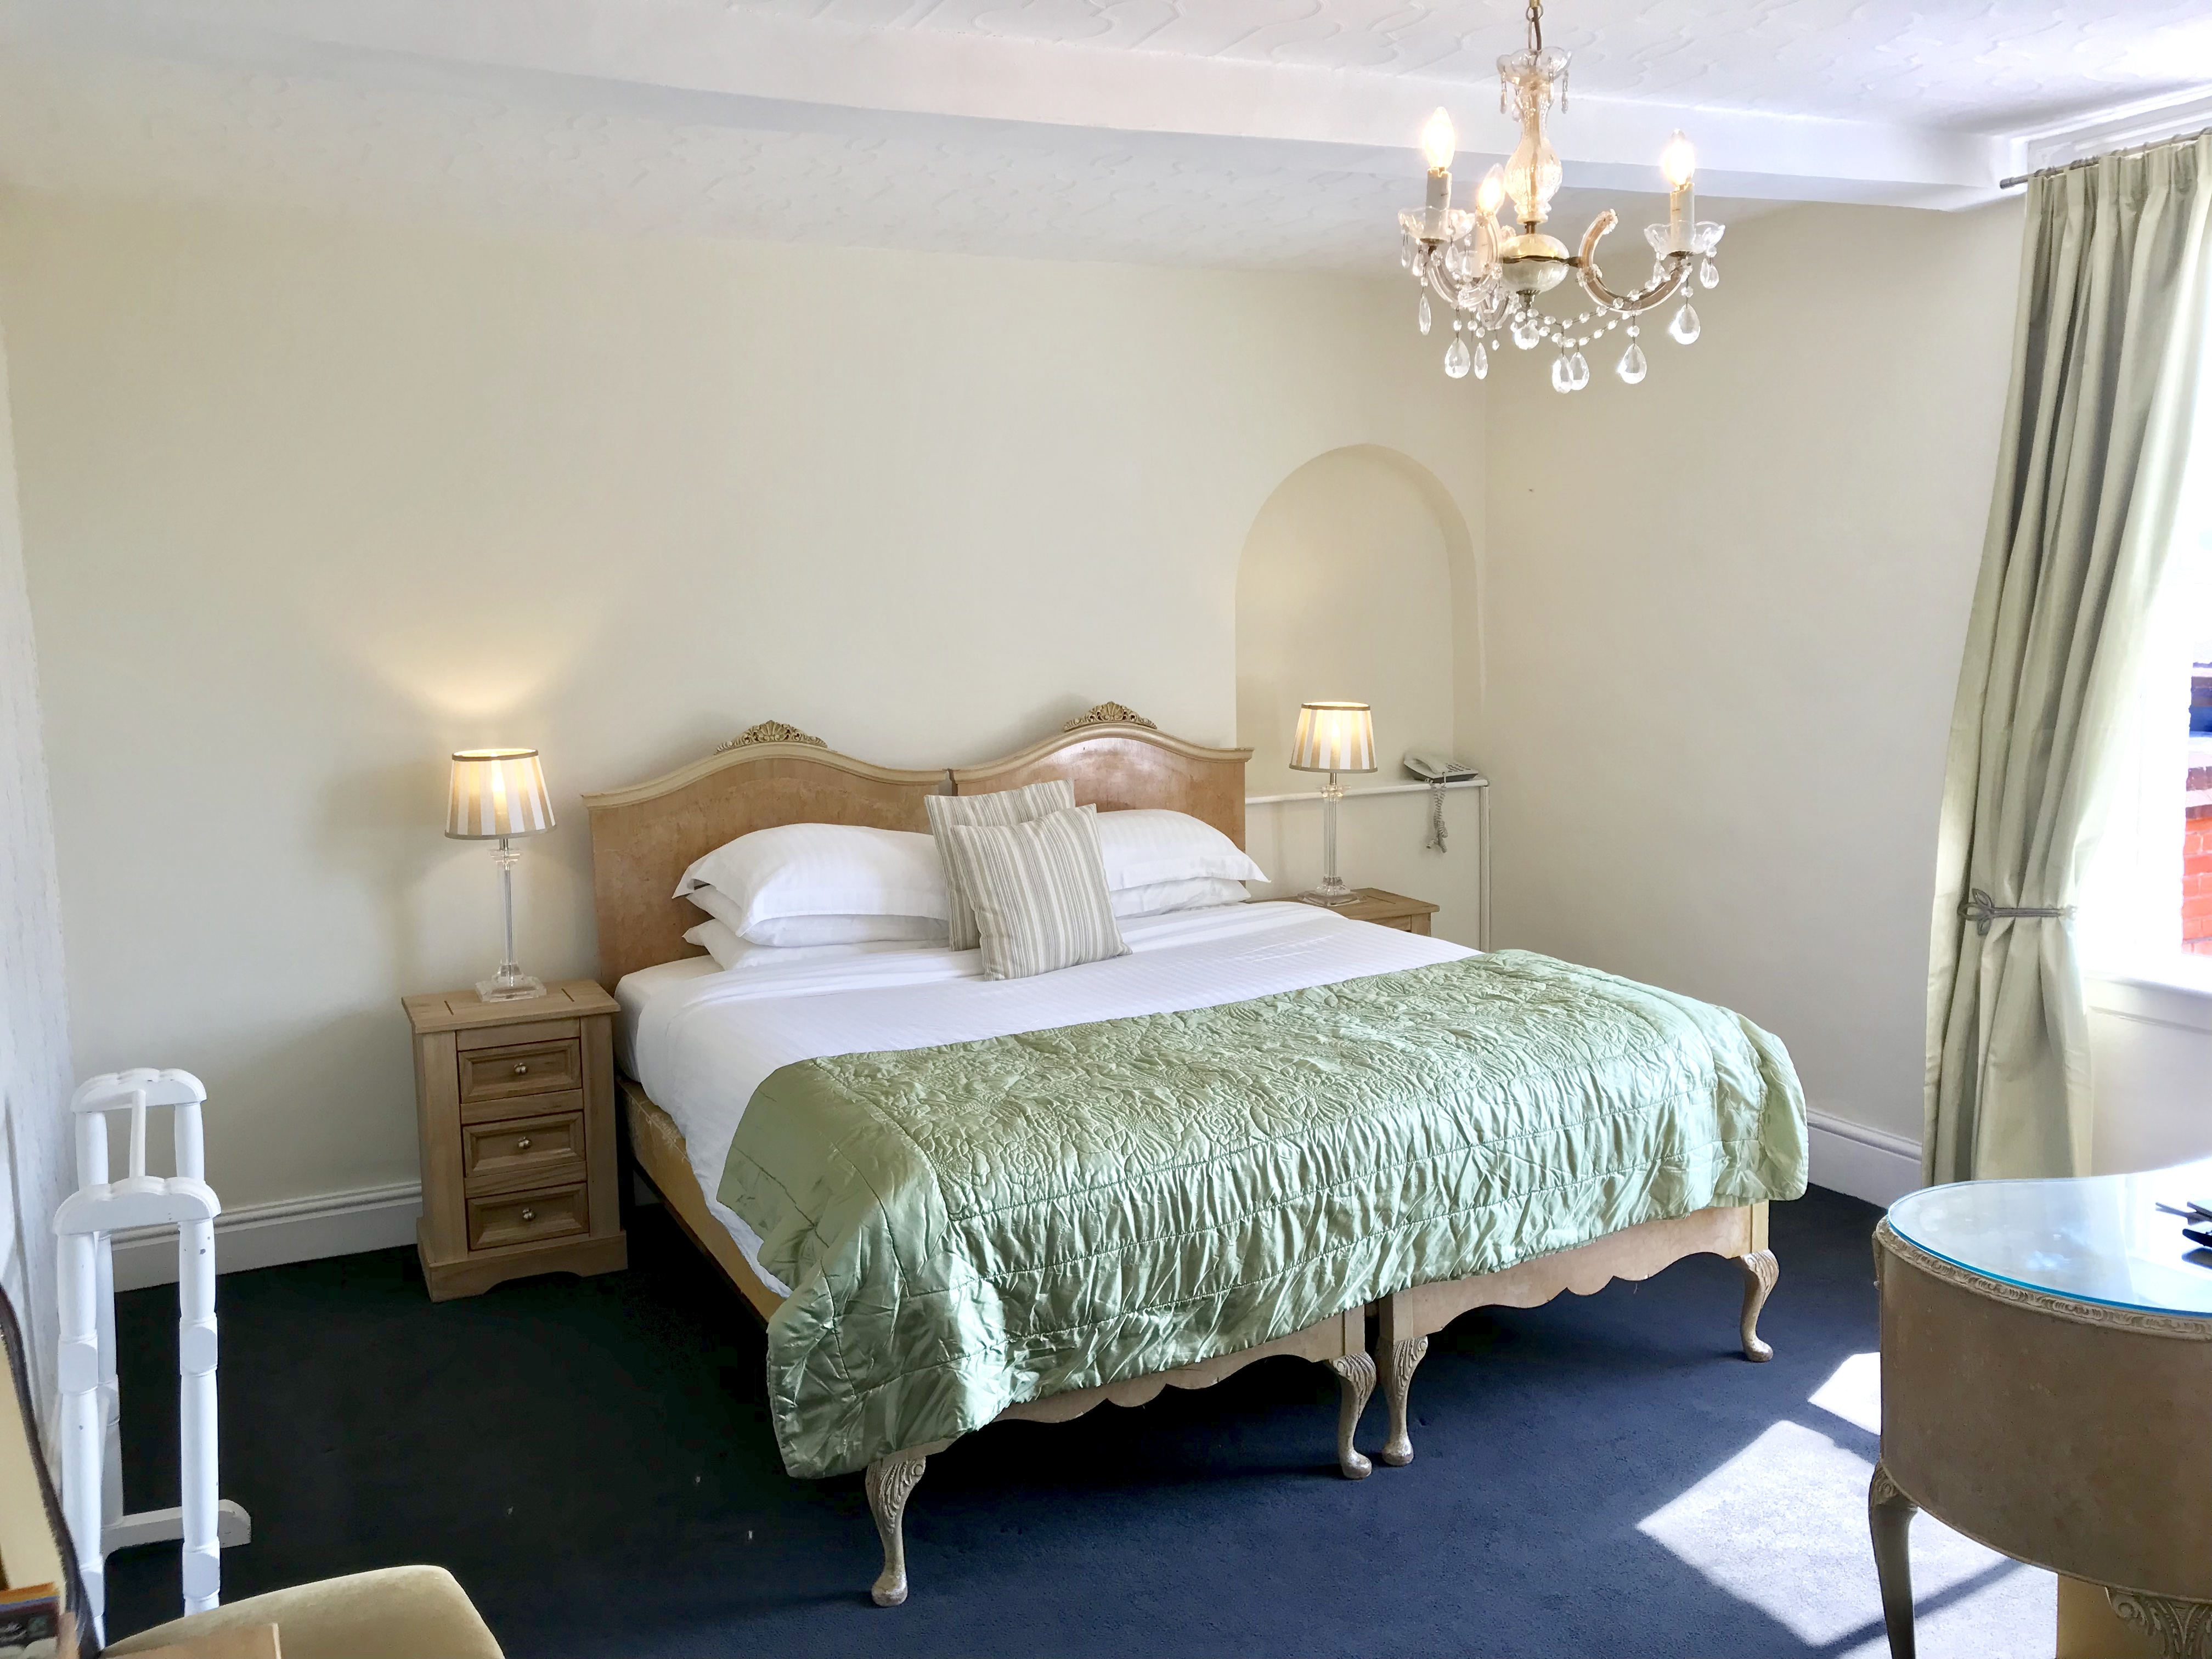 Alfreda room at Aylestone Court Hotel Hereford 4